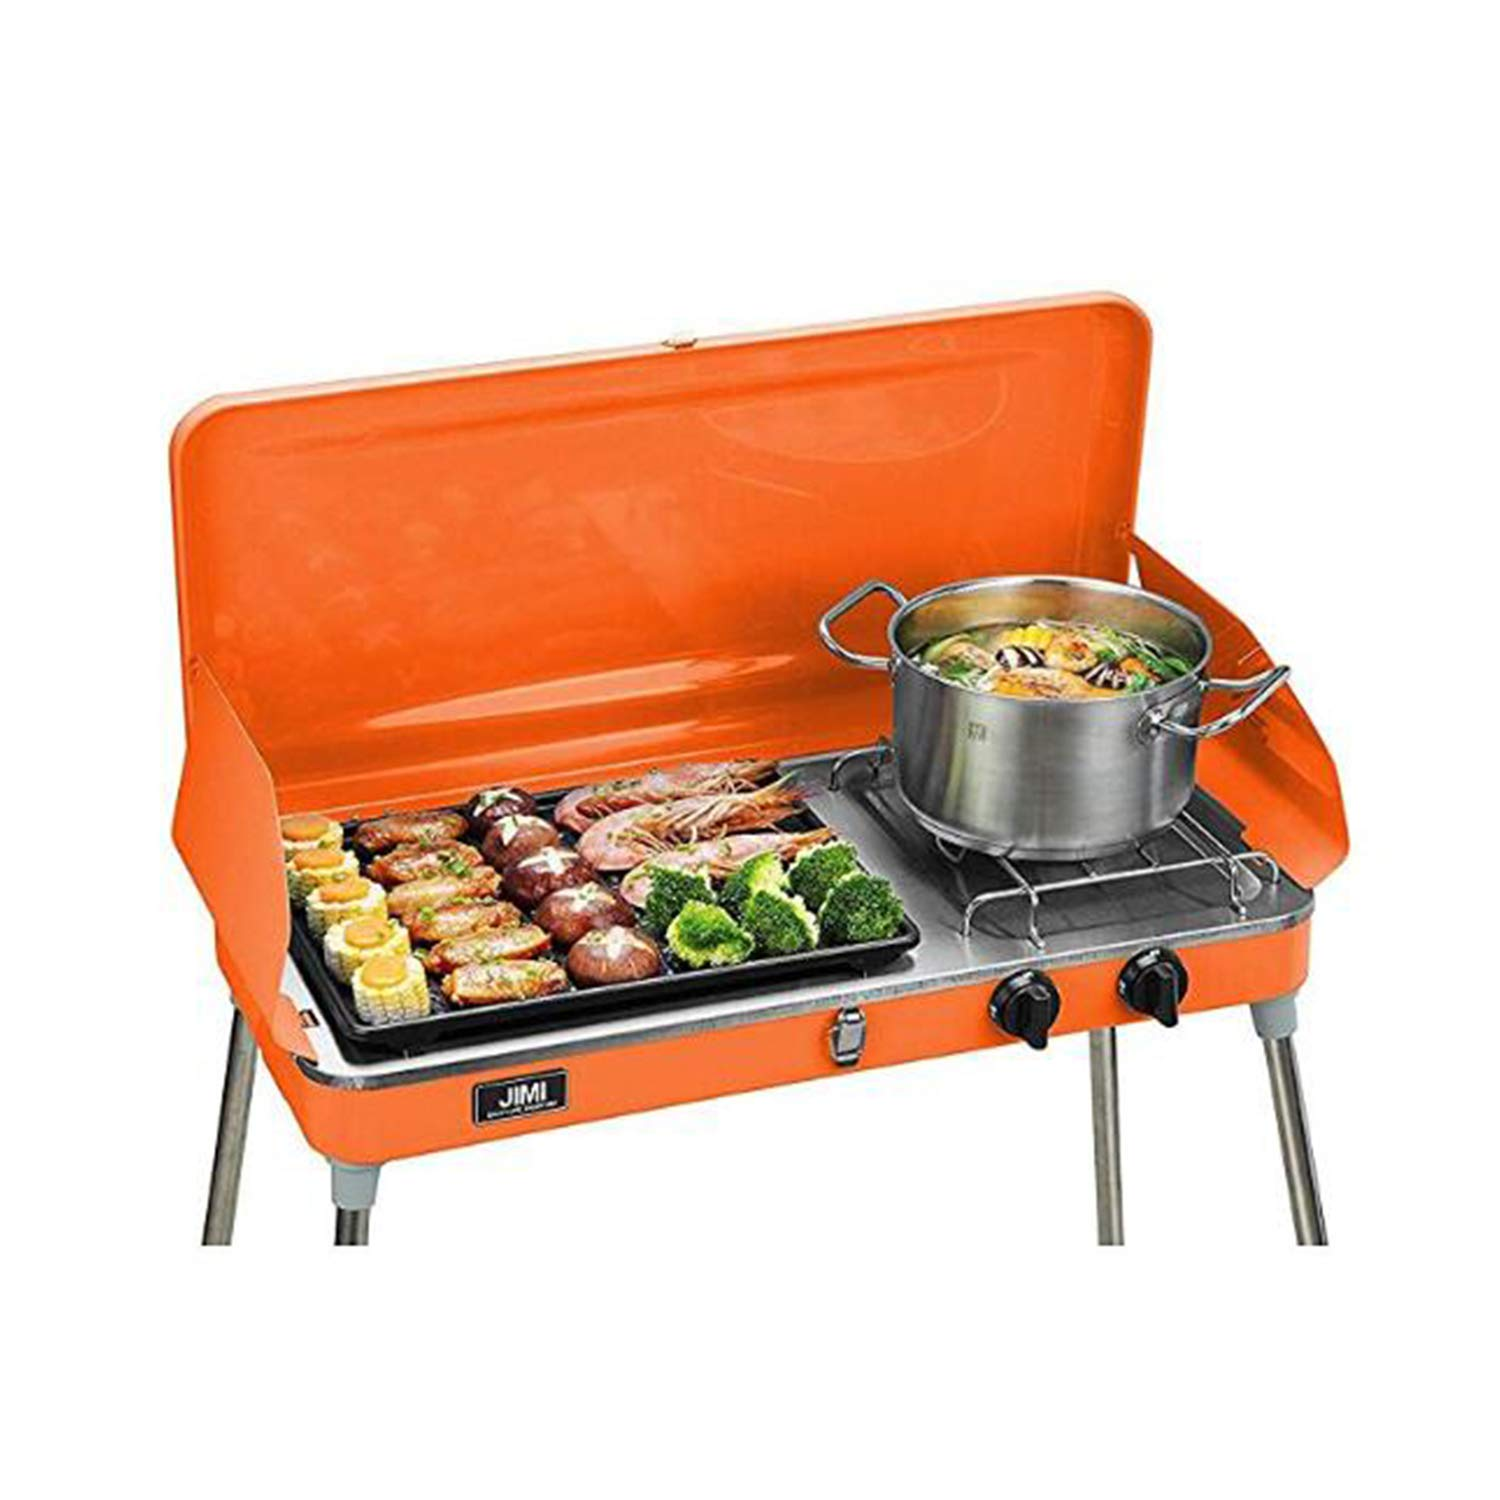 Liquid Propane BBQ Gas Grill,Barbecue Grill Outdoor Cooking Camping Stove Portable Stainless Steel,Orange by Wonlink